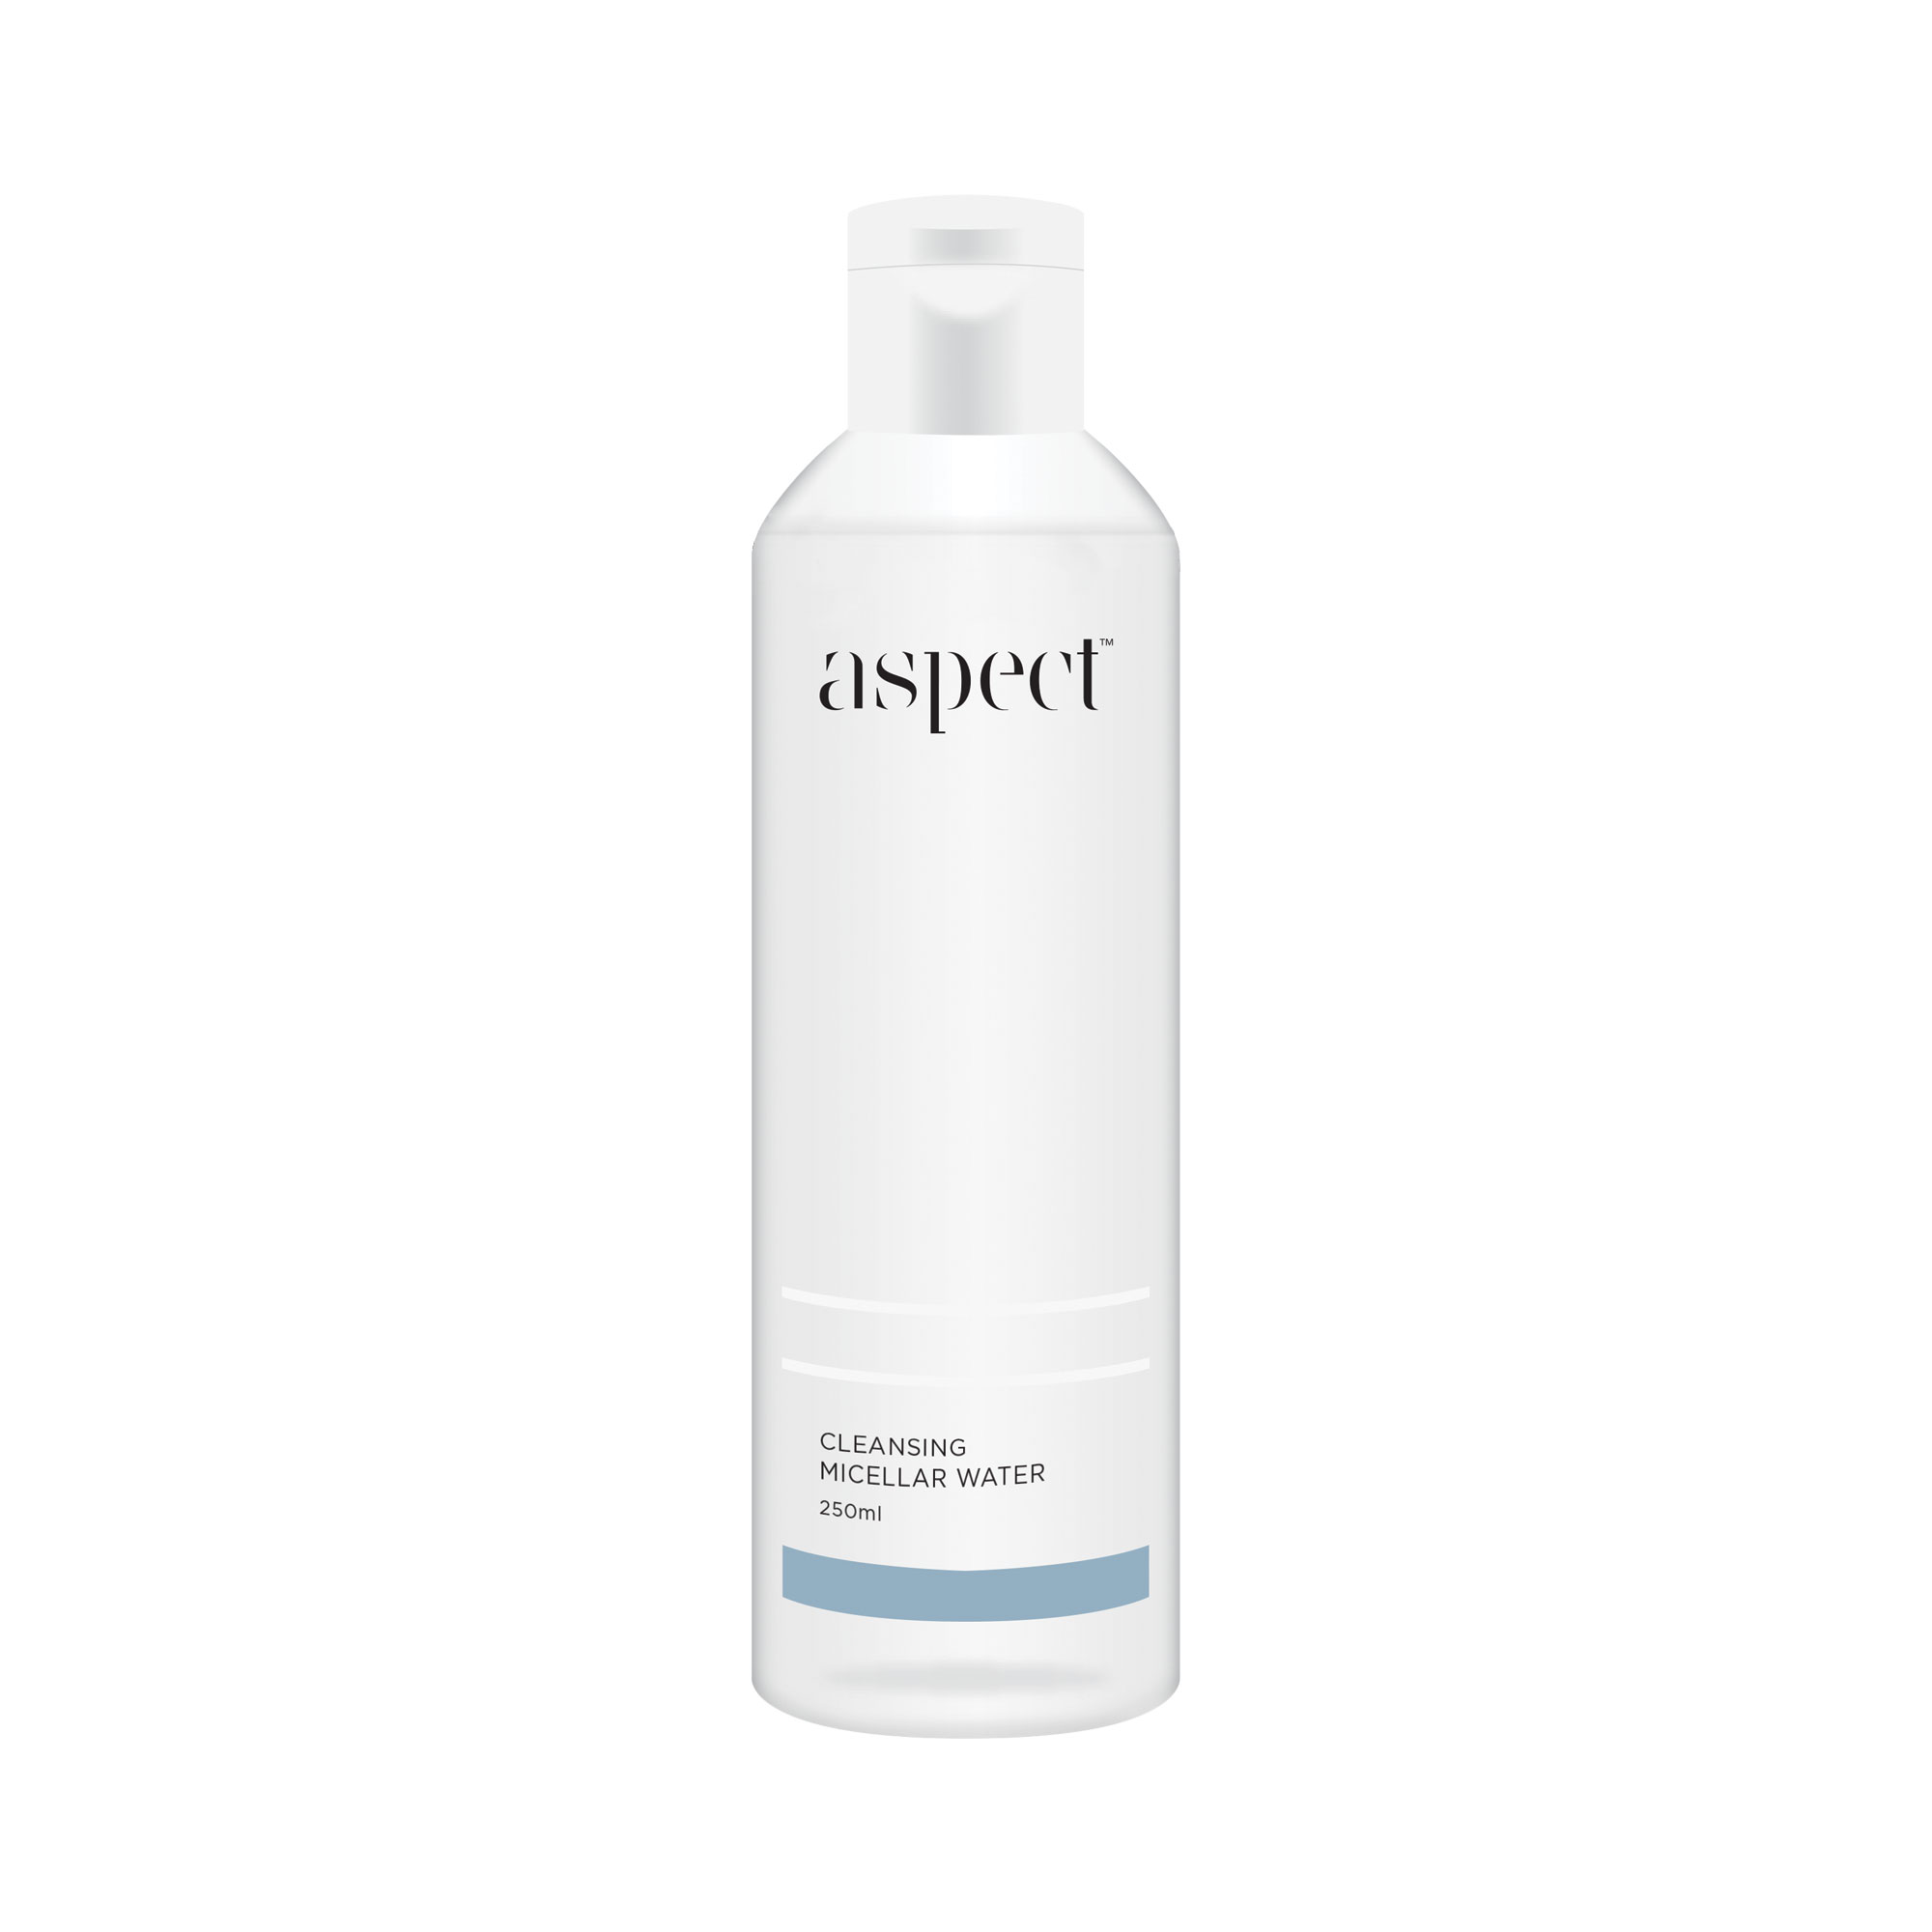 Aspect-Cleansing-Micellar-Water-250ml